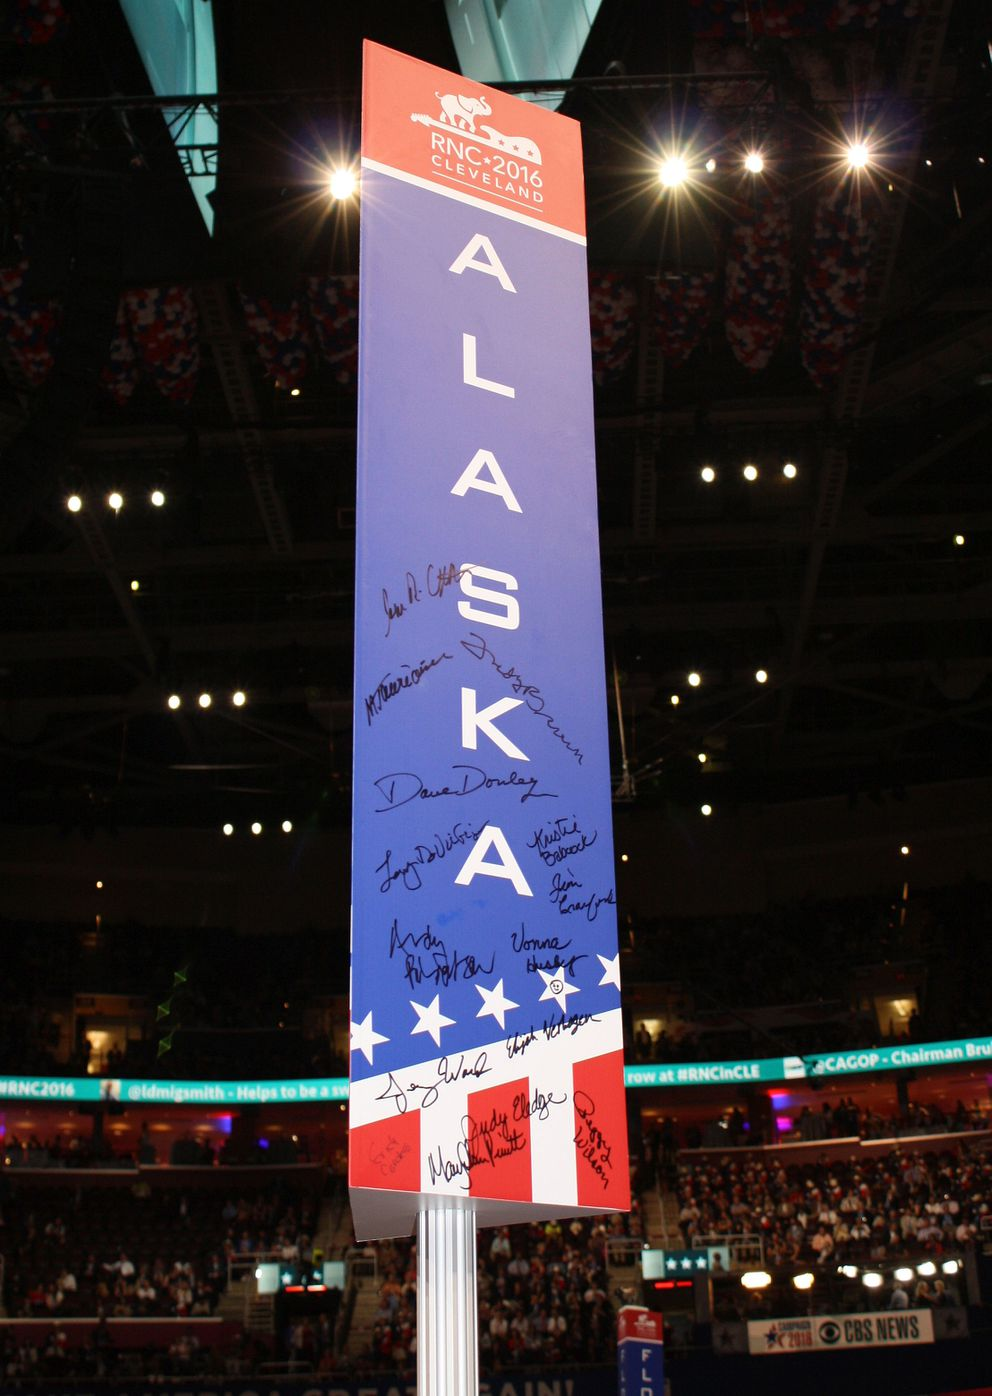 The sign designating the Alaska delegation's seating section at the 2016 Republican National Convention in Cleveland, Ohio, on July 18, 2016. (Erica Martinson / Alaska Dispatch News)